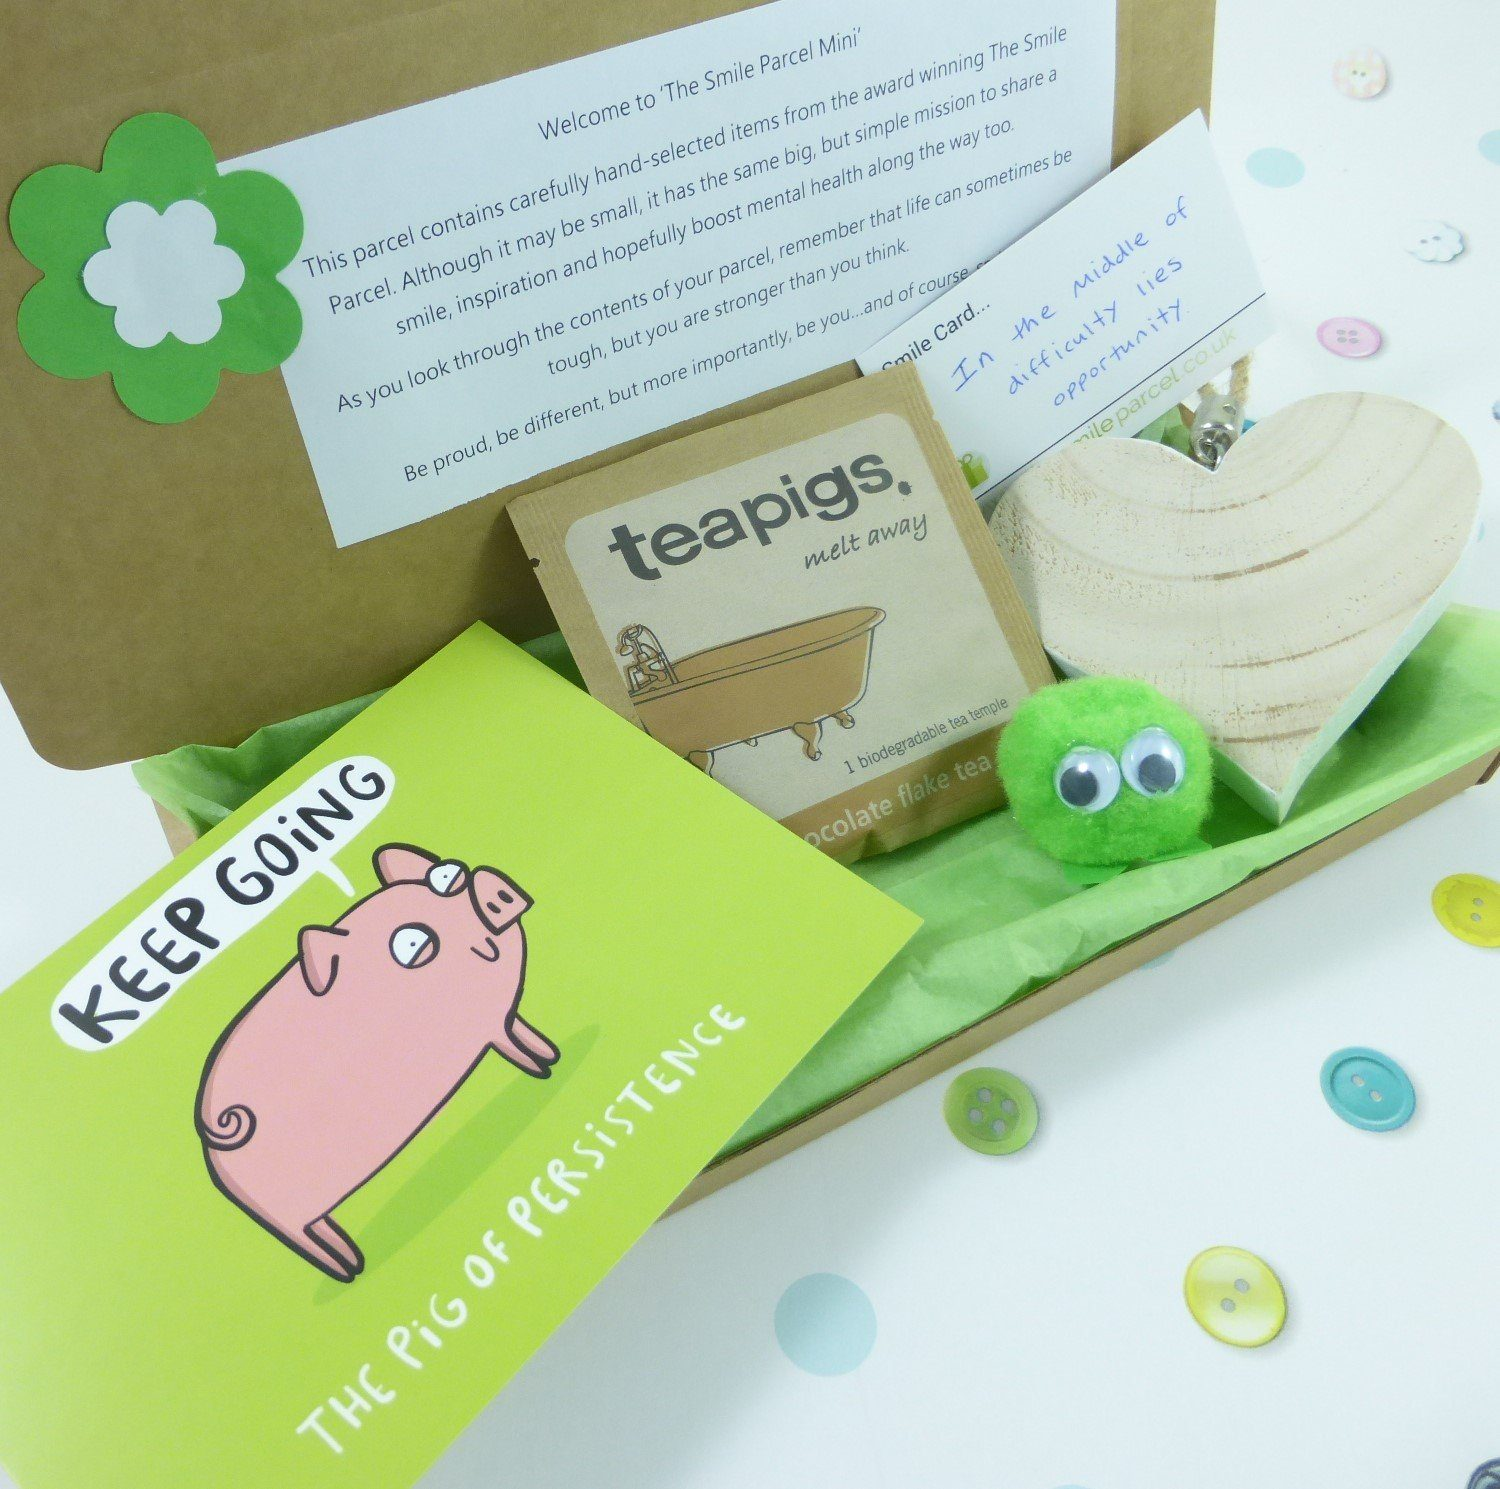 Green Letterbox Friendly, Pick Me Up Gift, The Smile Parcel Mini, Mental Health Gift, Wellbeing Box, Self Care Parcel, Happy Post Kind Shop